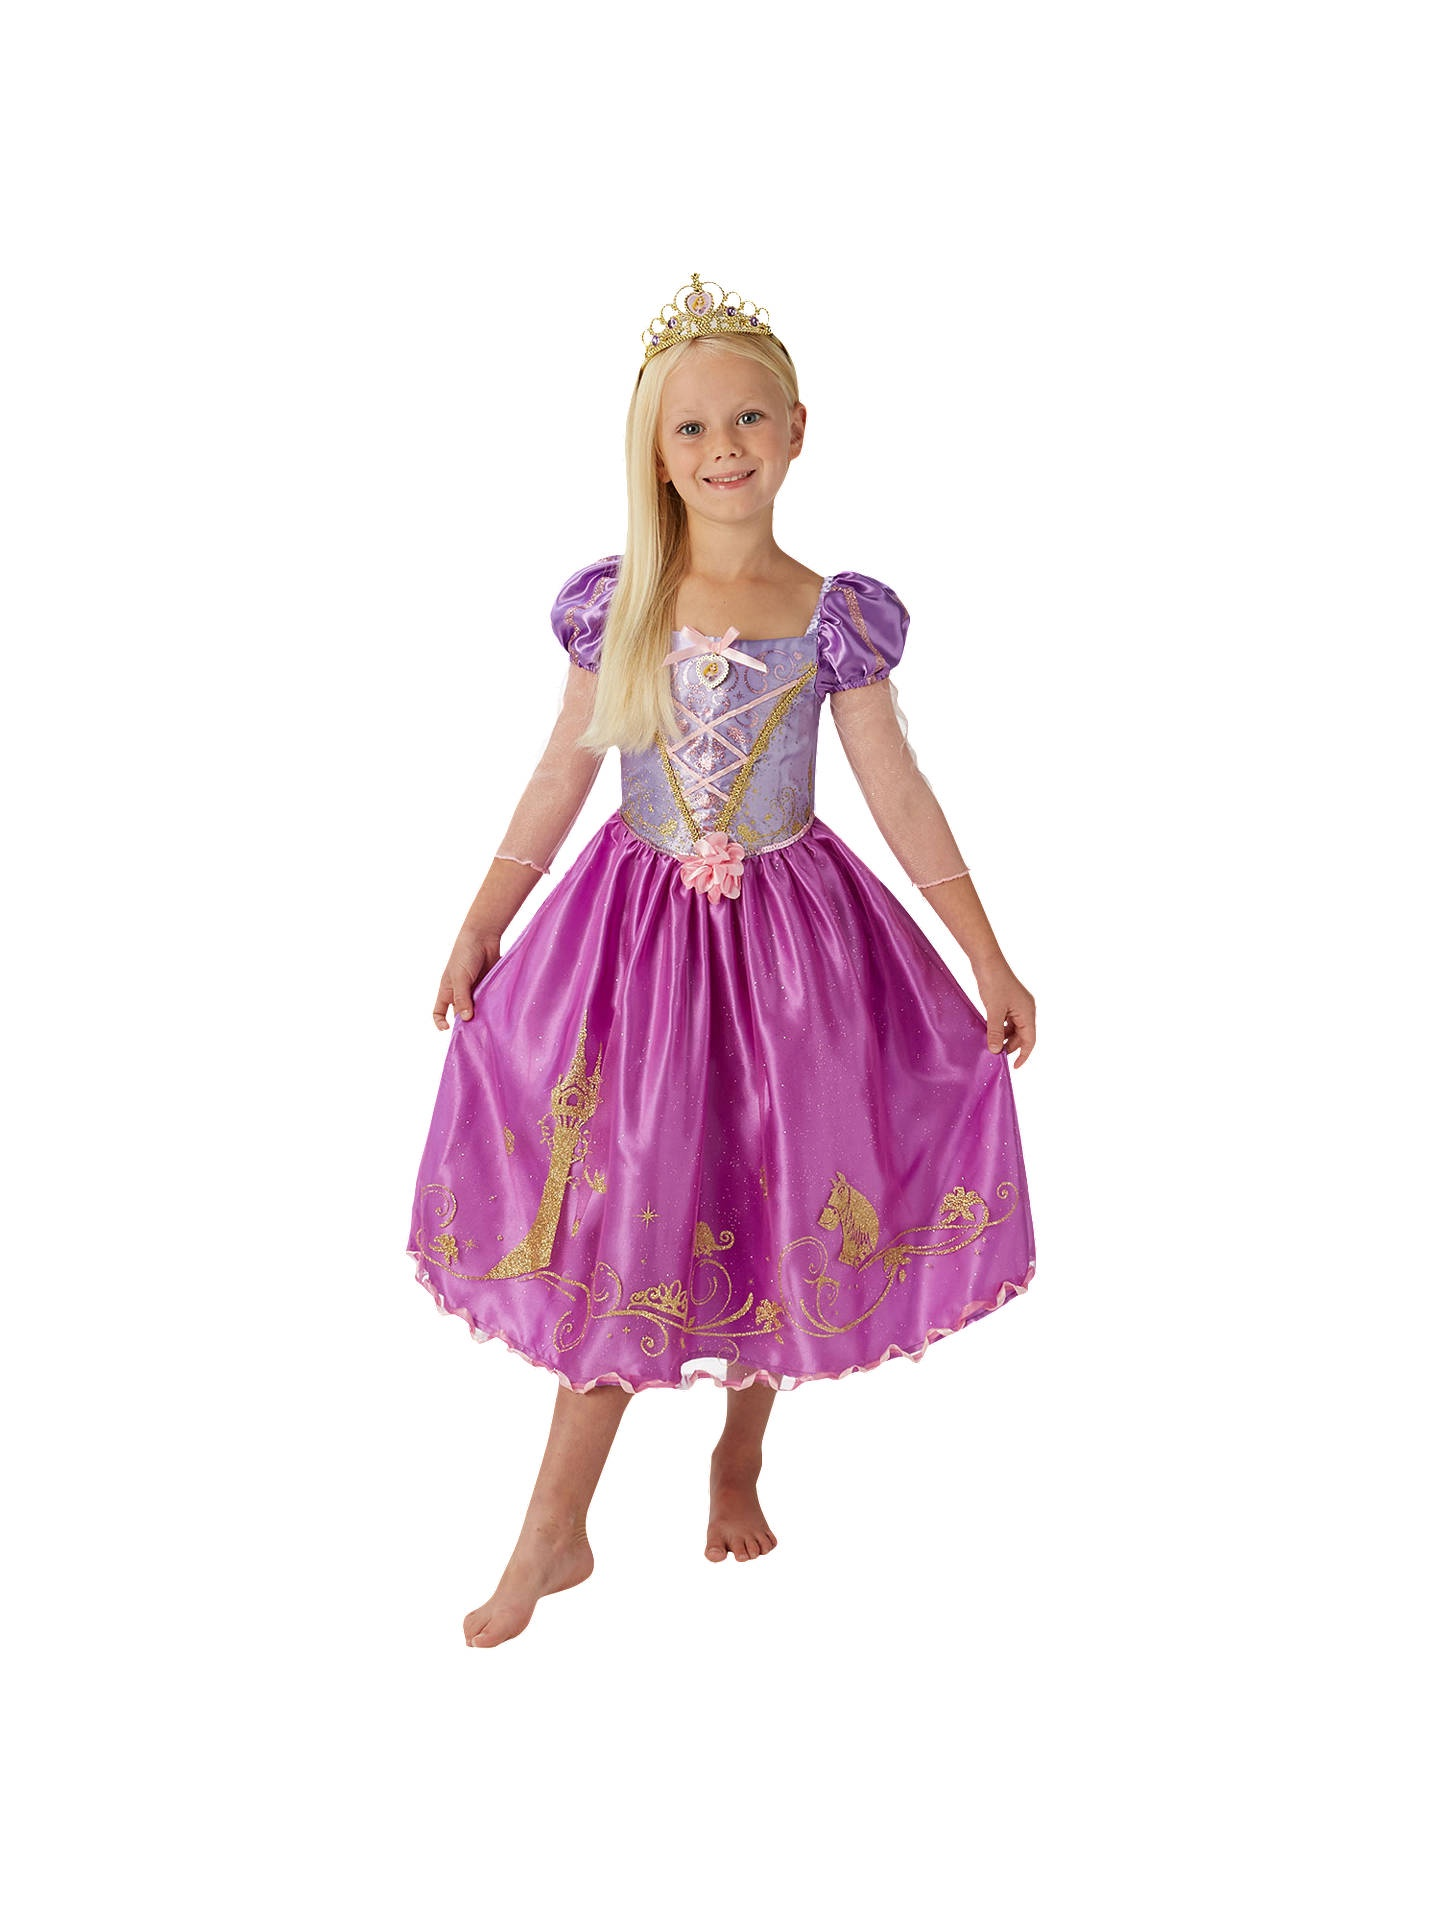 PRINCESS STORYTELLER RAPUNZEL SIZE M 5-6 YEARS